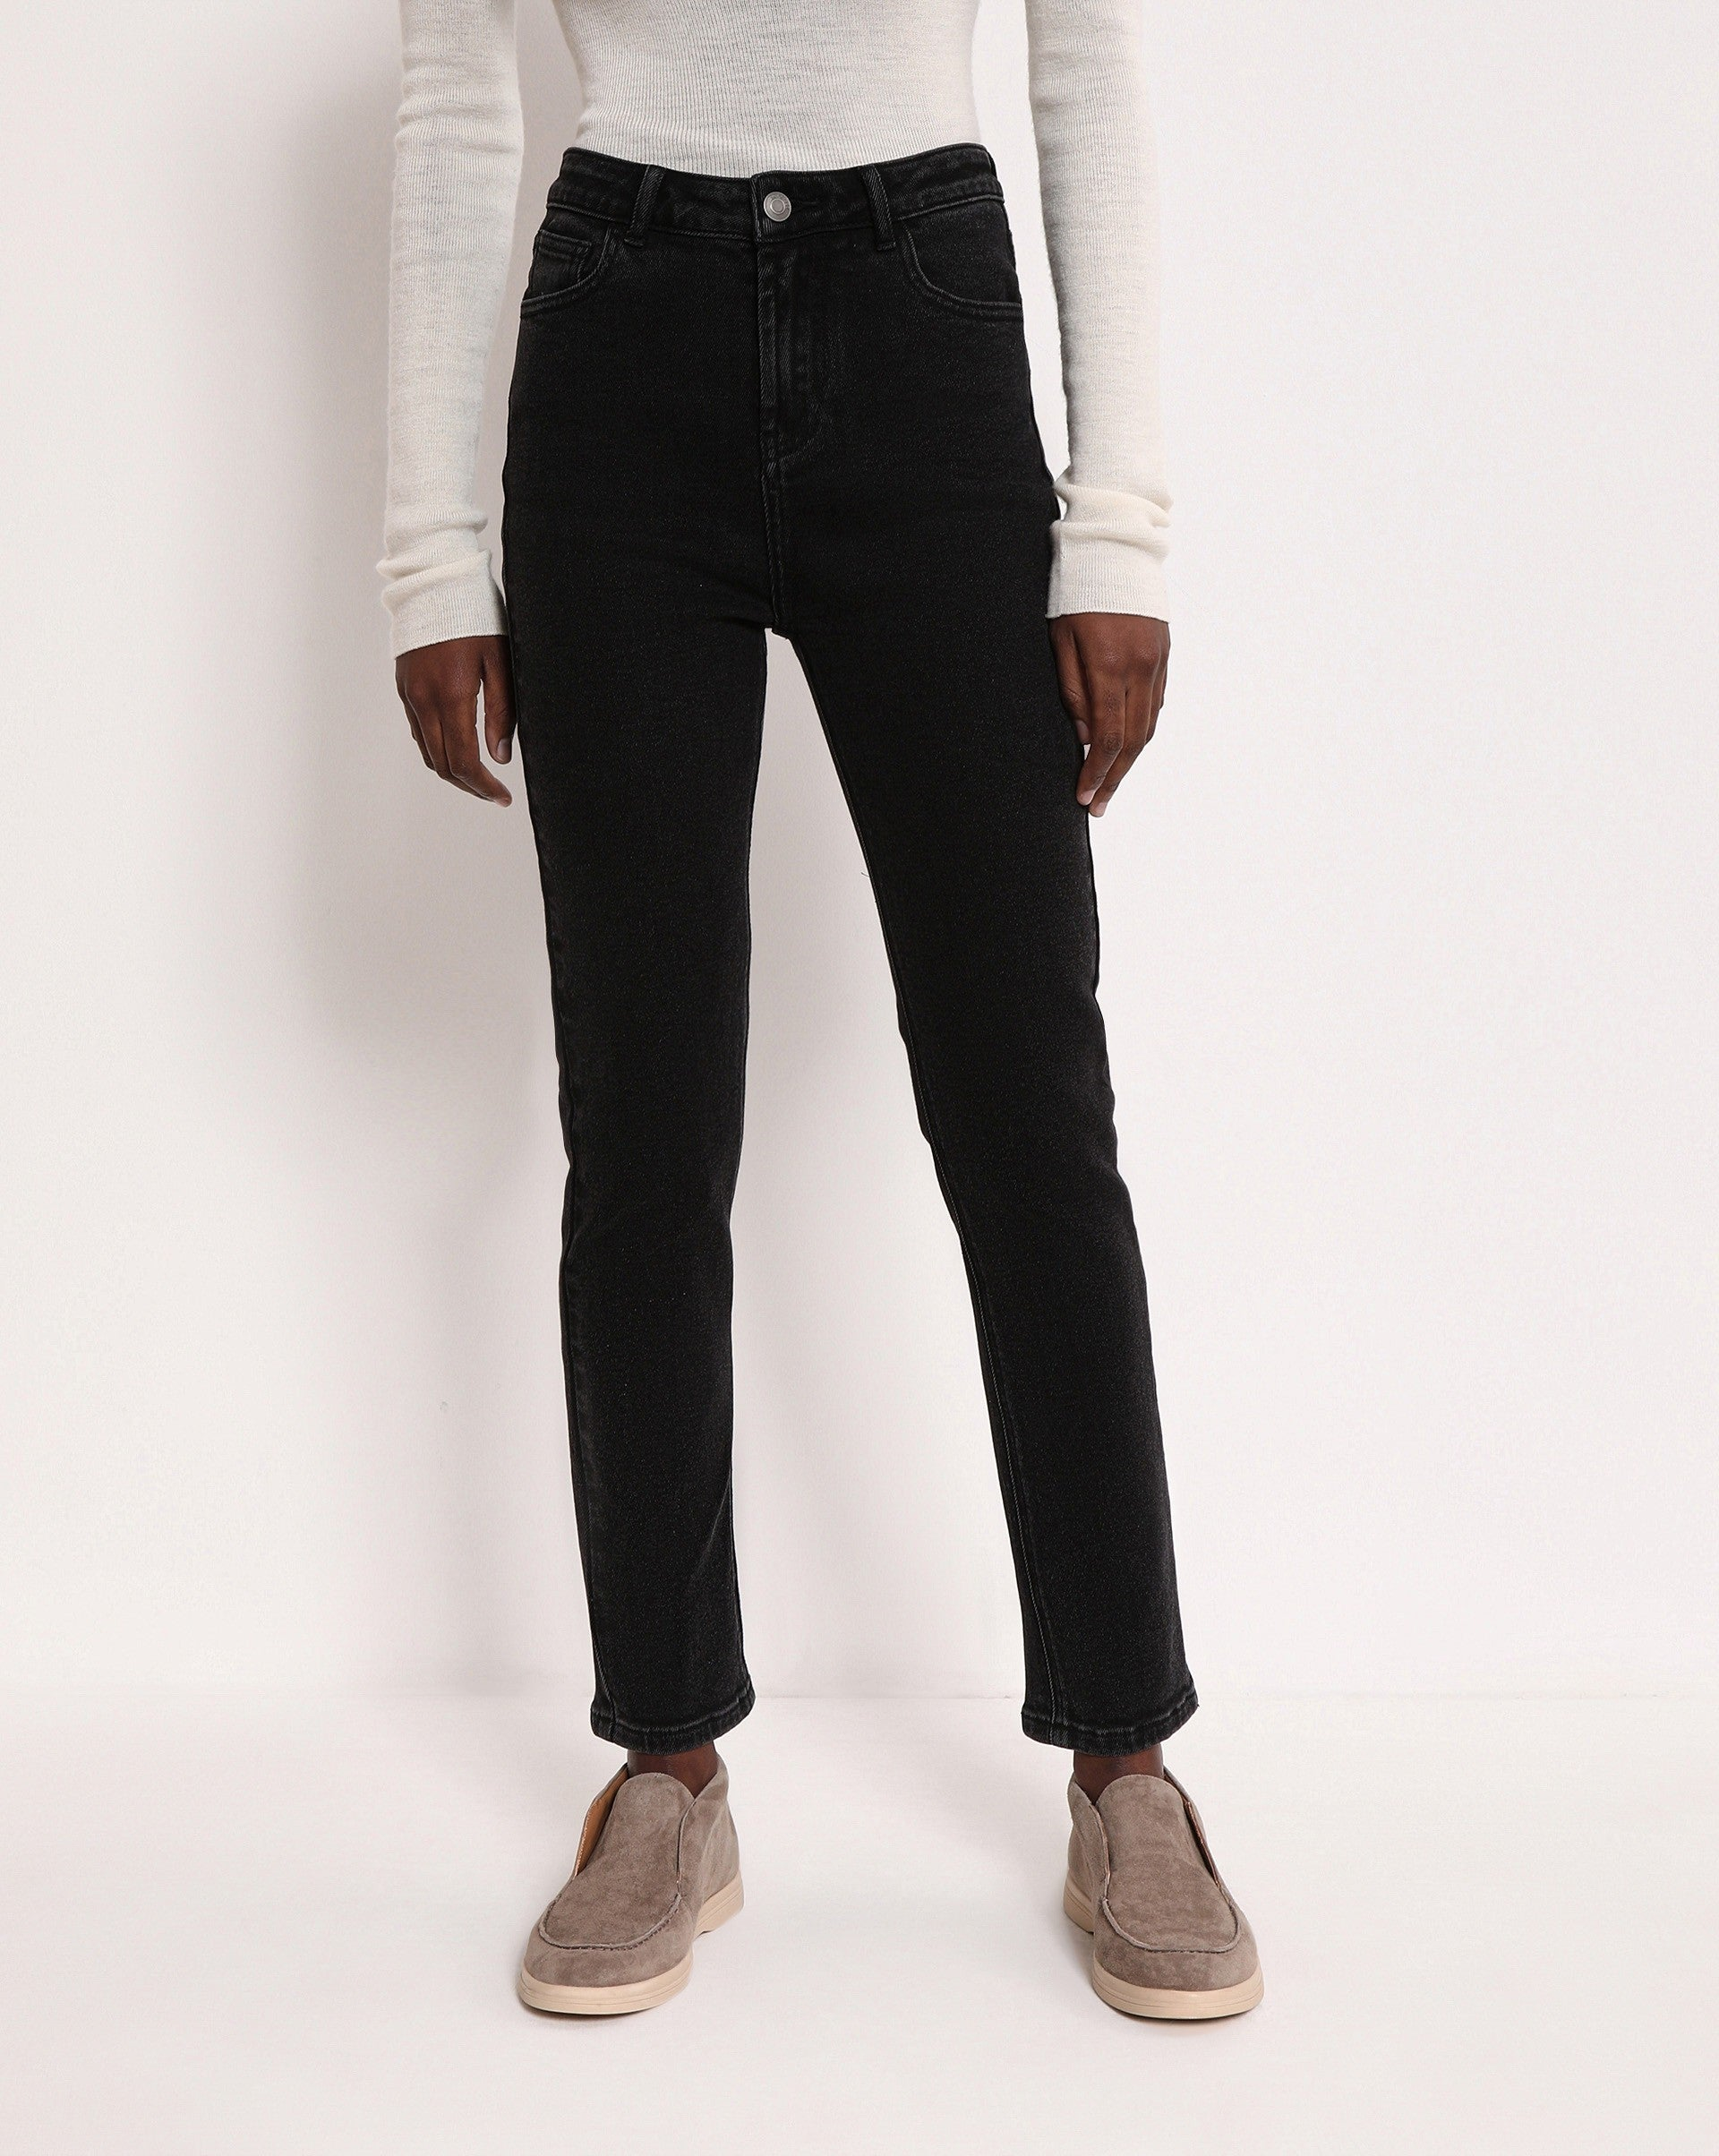 Slim fit straight leg jeans - 12 STOREEZ